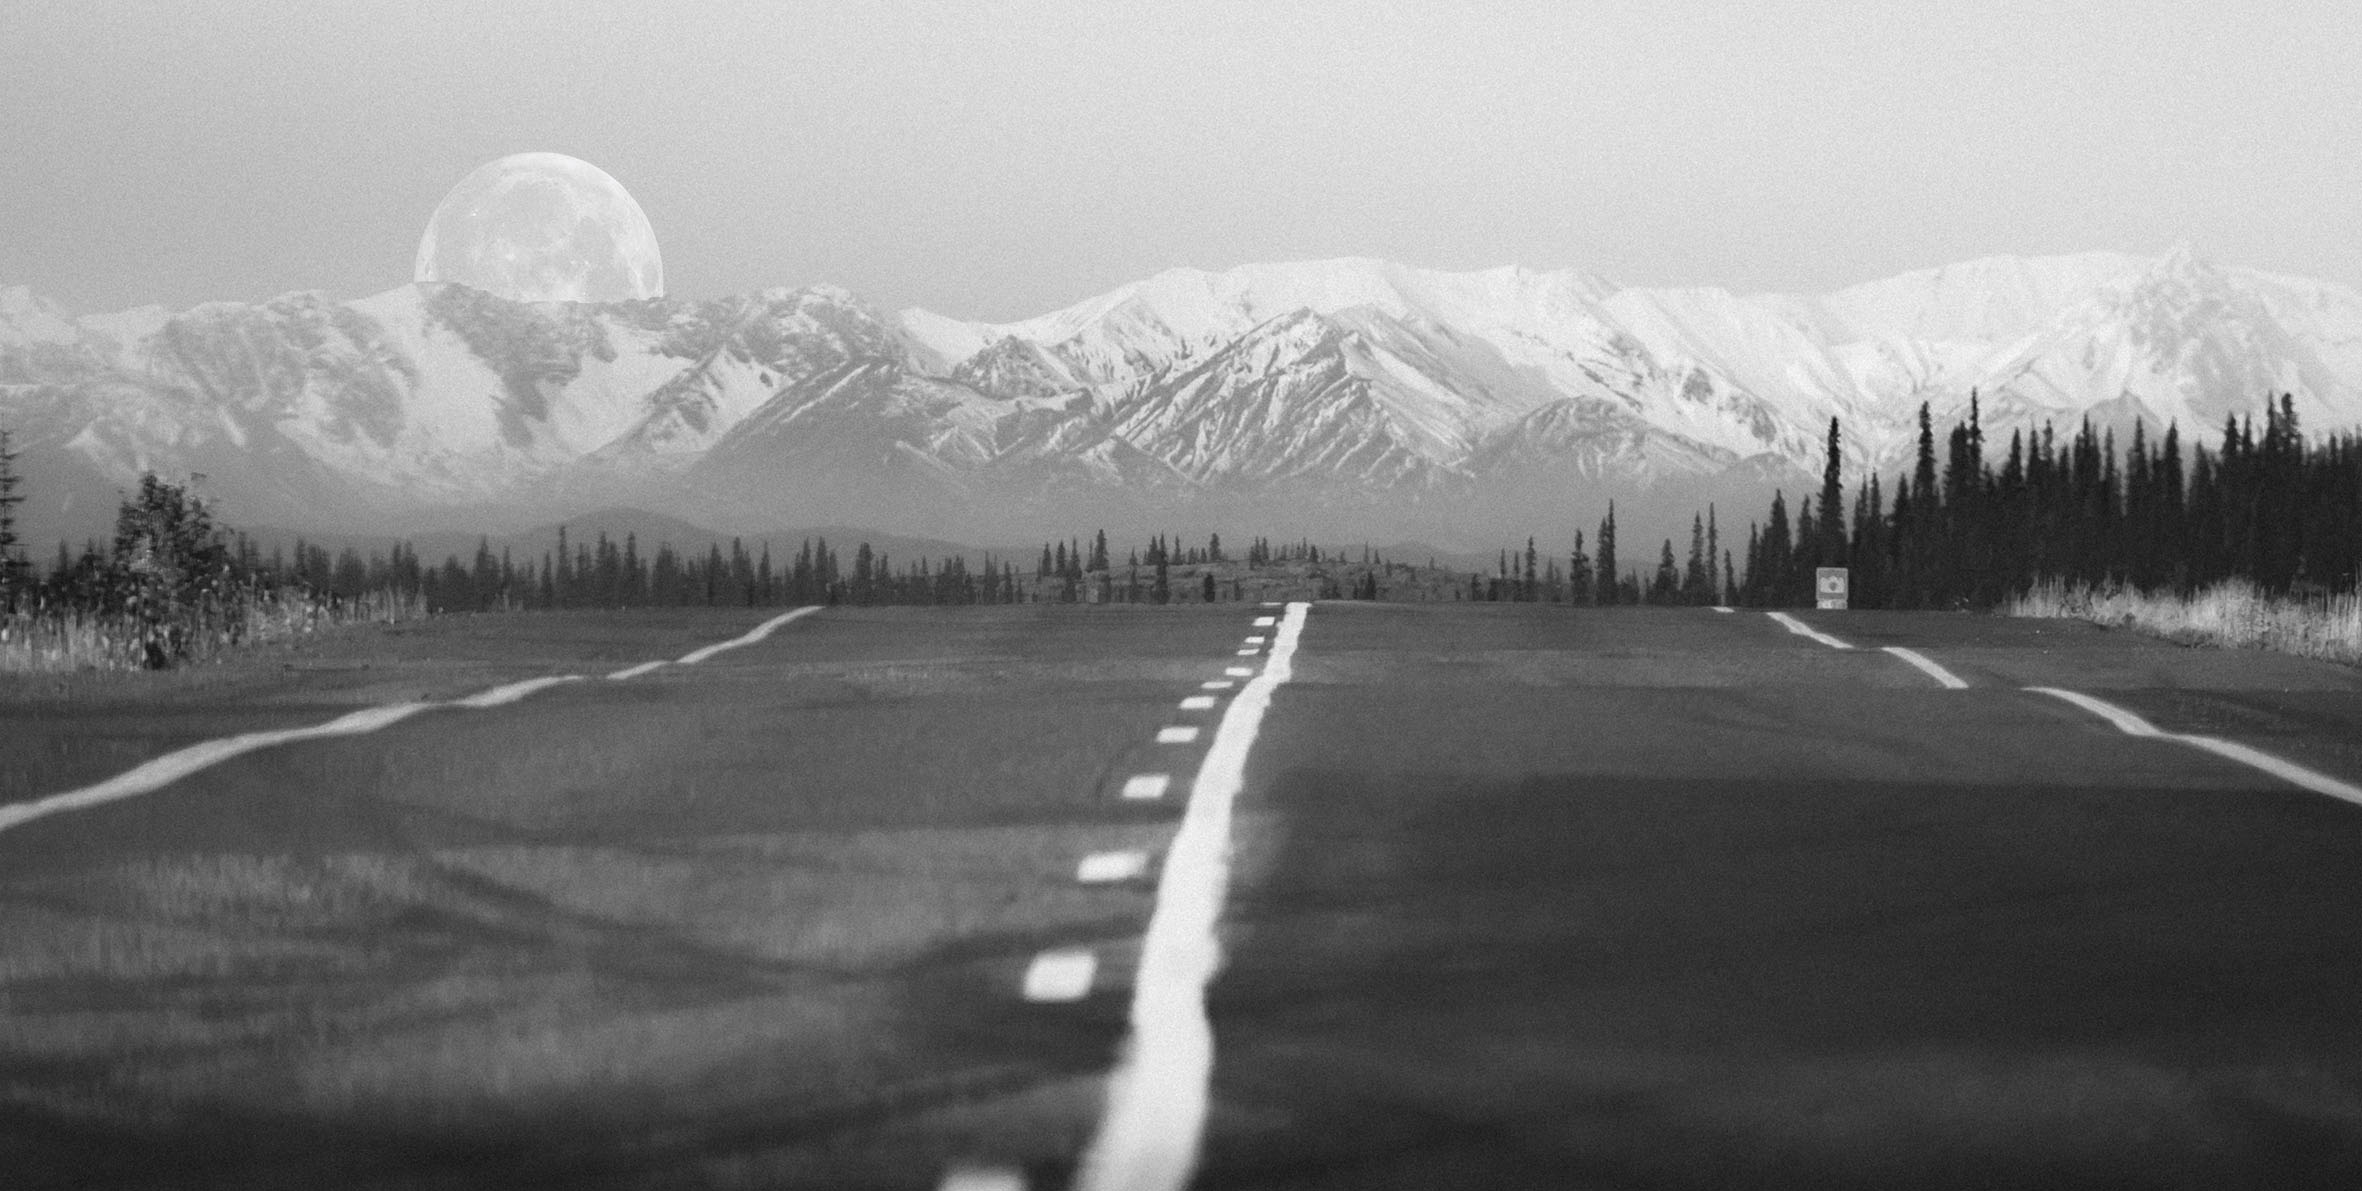 remicito photo, image du jour, photo du jour, photo of the day, road trip, trip alaska, beautiful Alaska, best french photographer, meilleur photographe français, black and white photography alaska, voyage alaska, belle photo alaska, route alaska, photo noir et blanc alaska, idée cadeau, idée déco